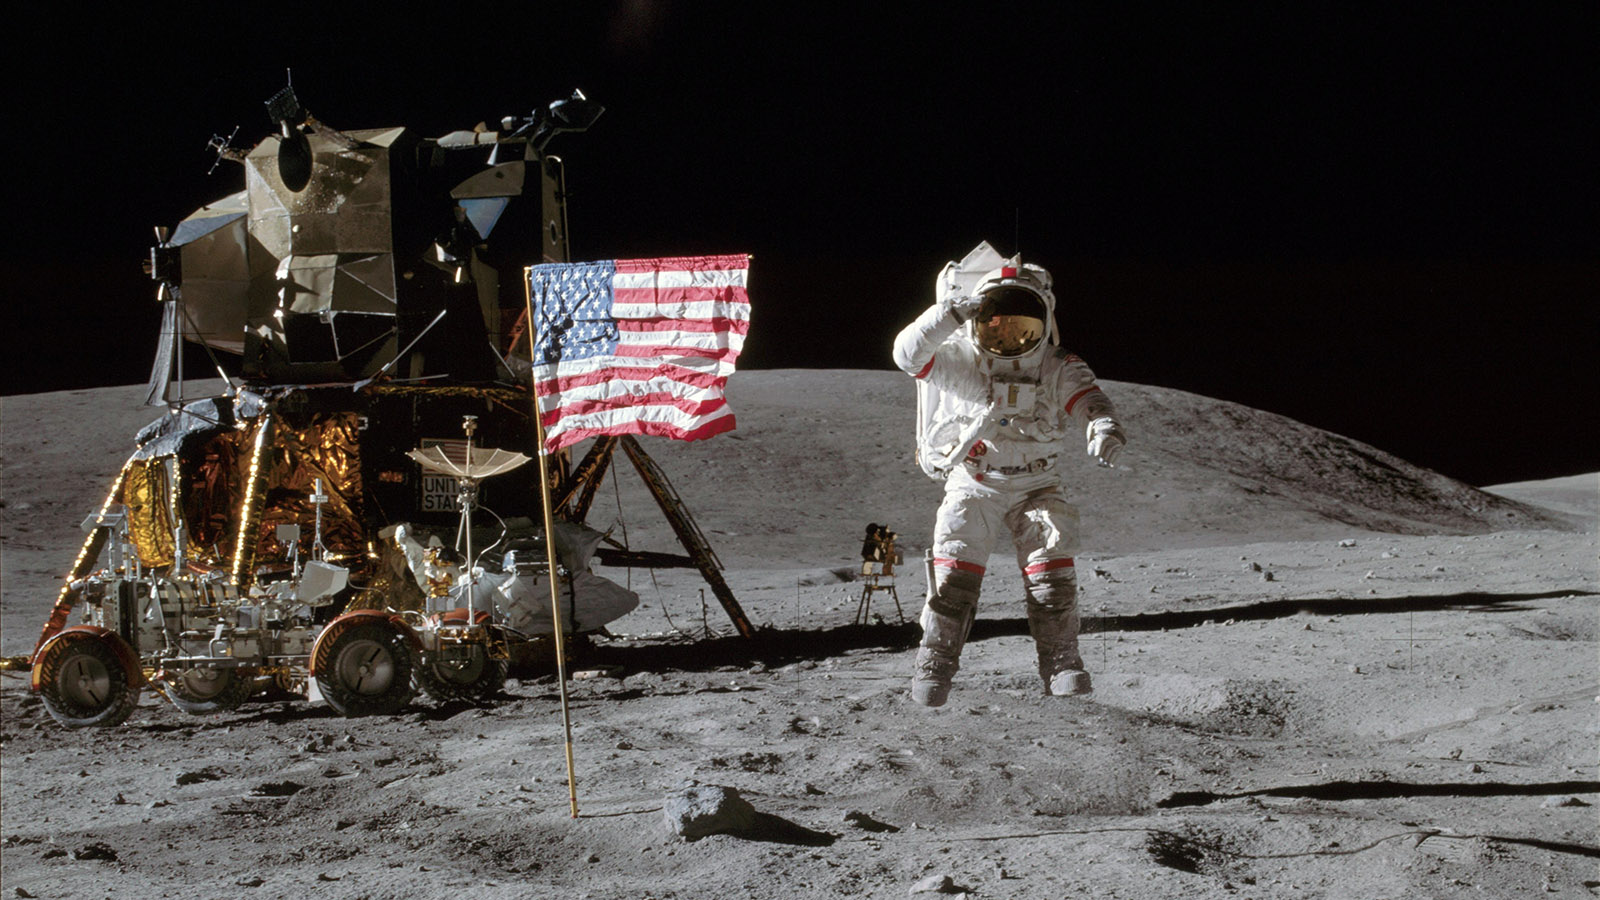 Apollo 11 Put the First Men on the Moon. What About Missions 12-17?